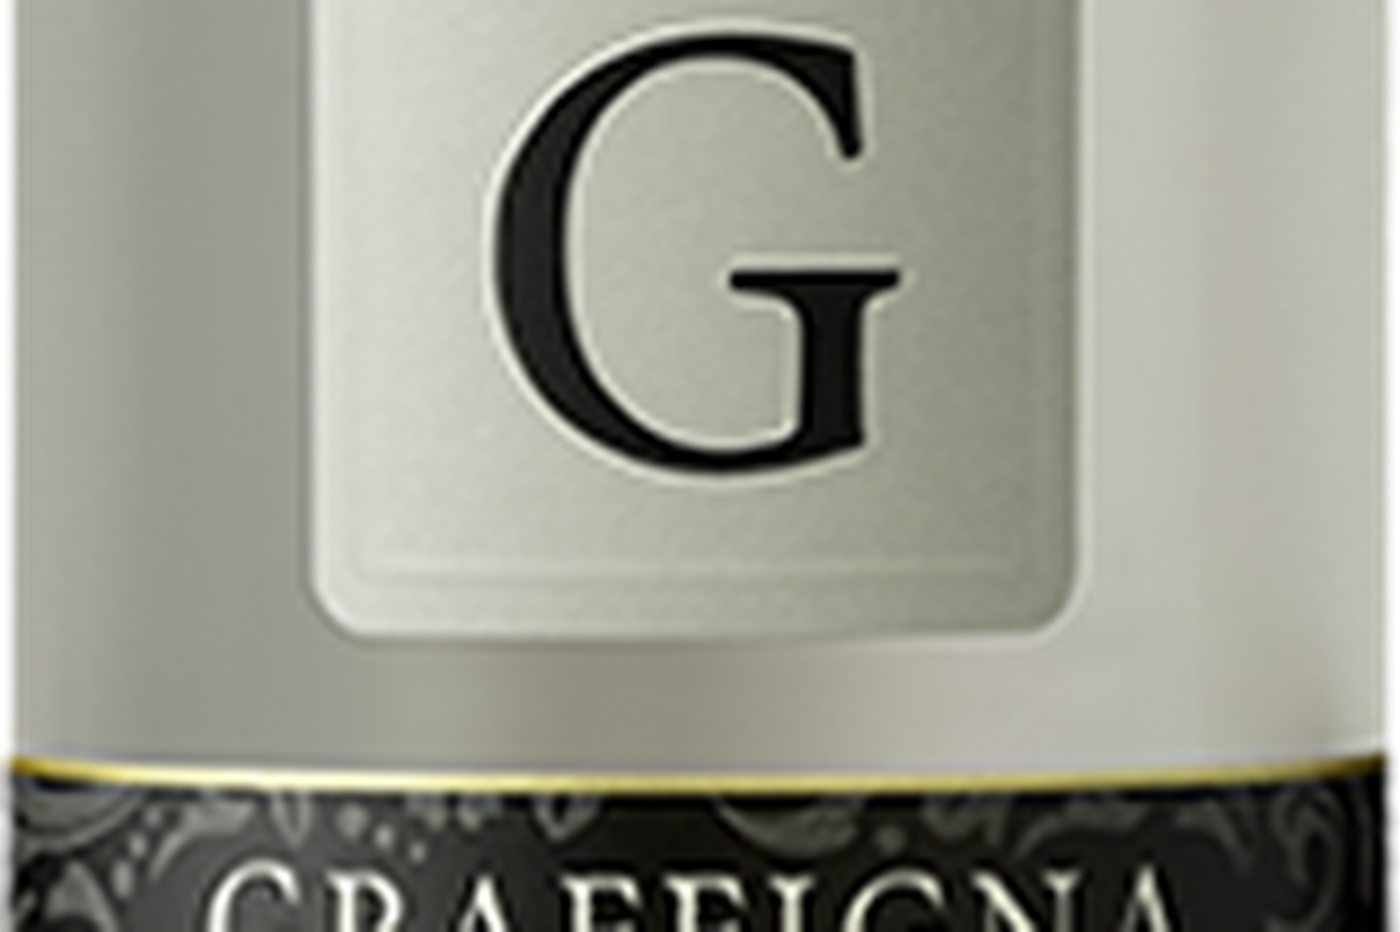 This affordable pinot grigio from Argentina has unexpected flavor